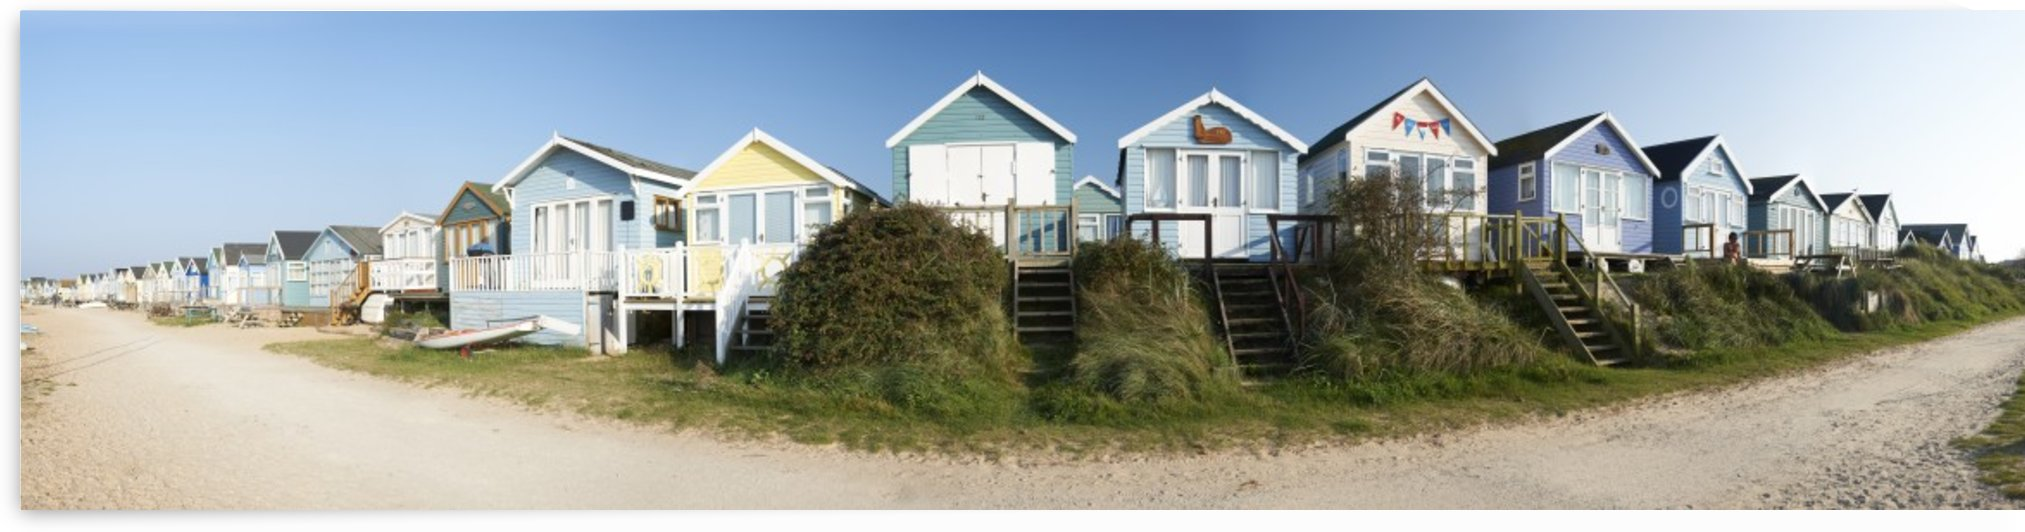 Panorama of Beach Huts by Adrian Brockwell